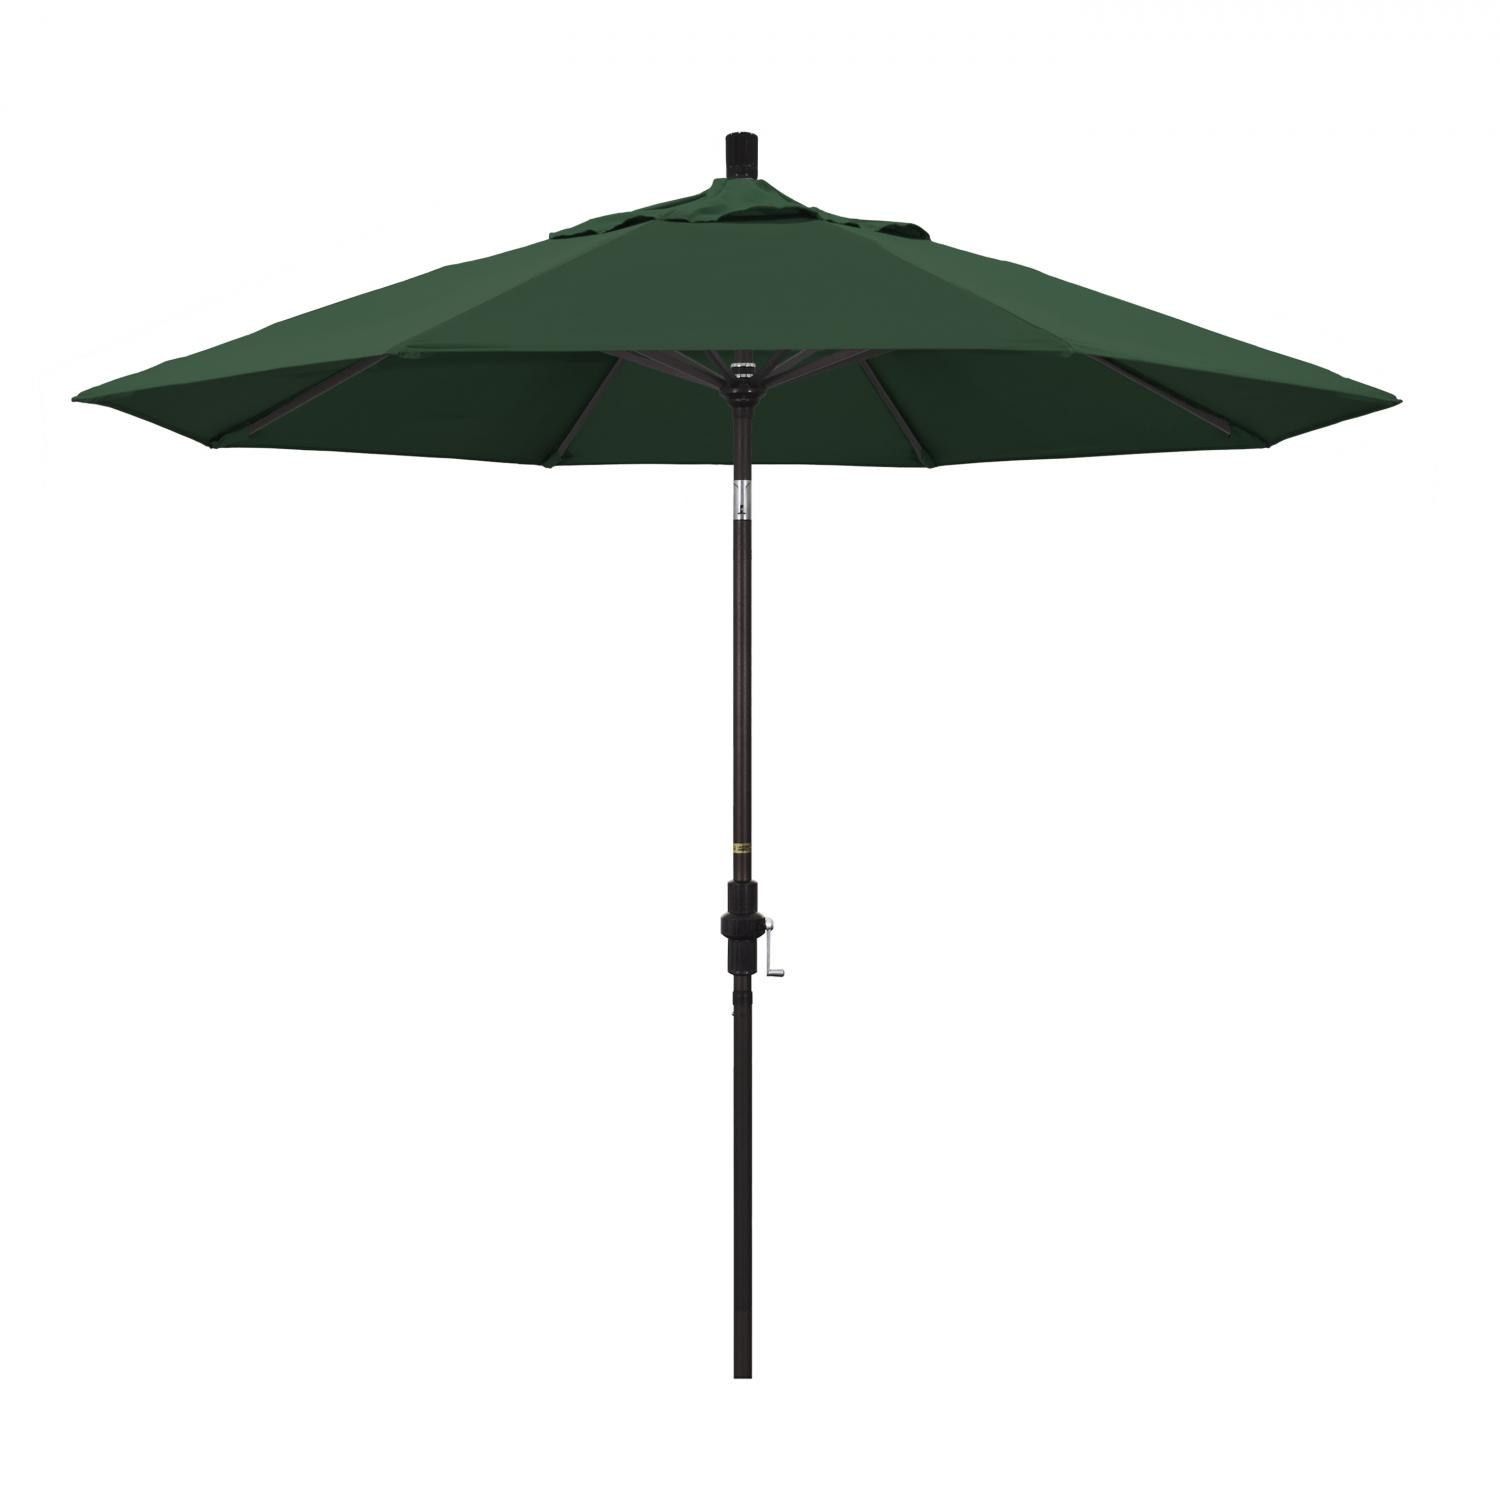 California Umbrella 9 Ft. Octagonal Aluminum Collar Tilt Patio Umbrella W/ Crank Lift & Aluminum Ribs - Bronze Frame / Olefin Hunter Green Canopy